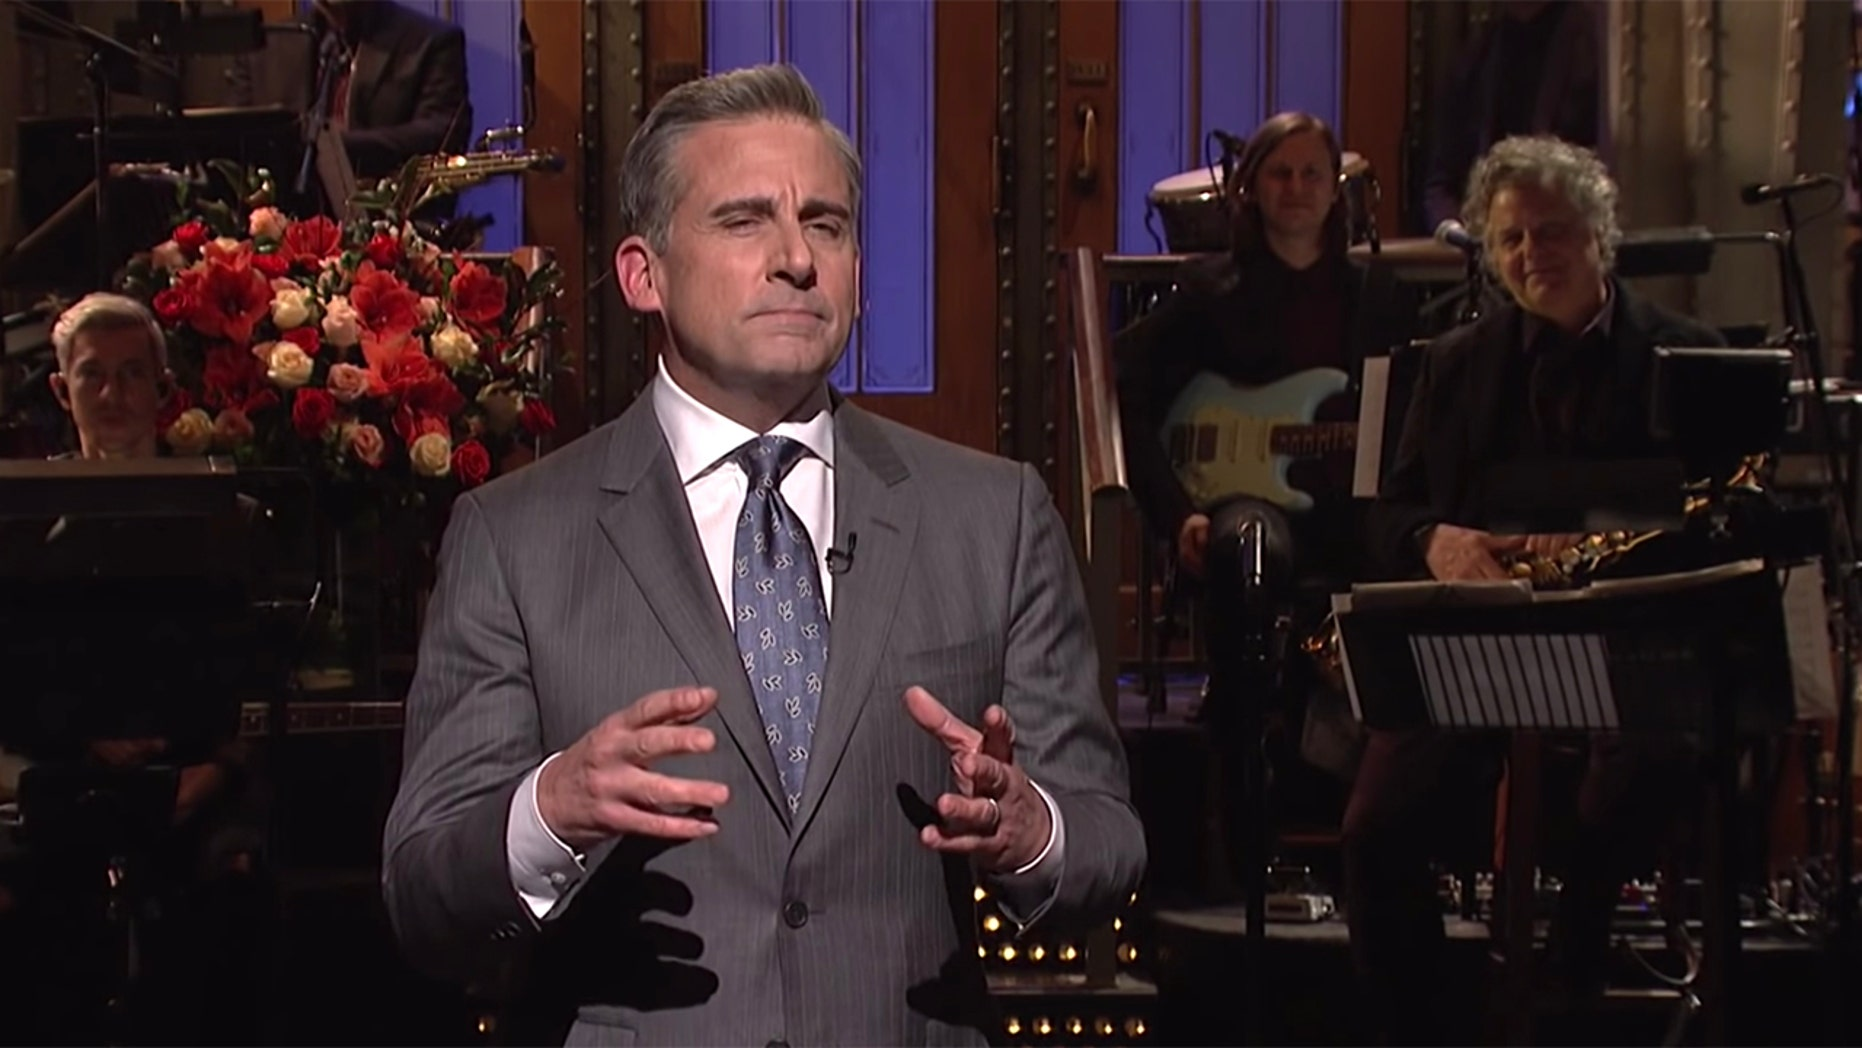 Steve Carell 'SNL' Episode: The Best Sketches And Moments